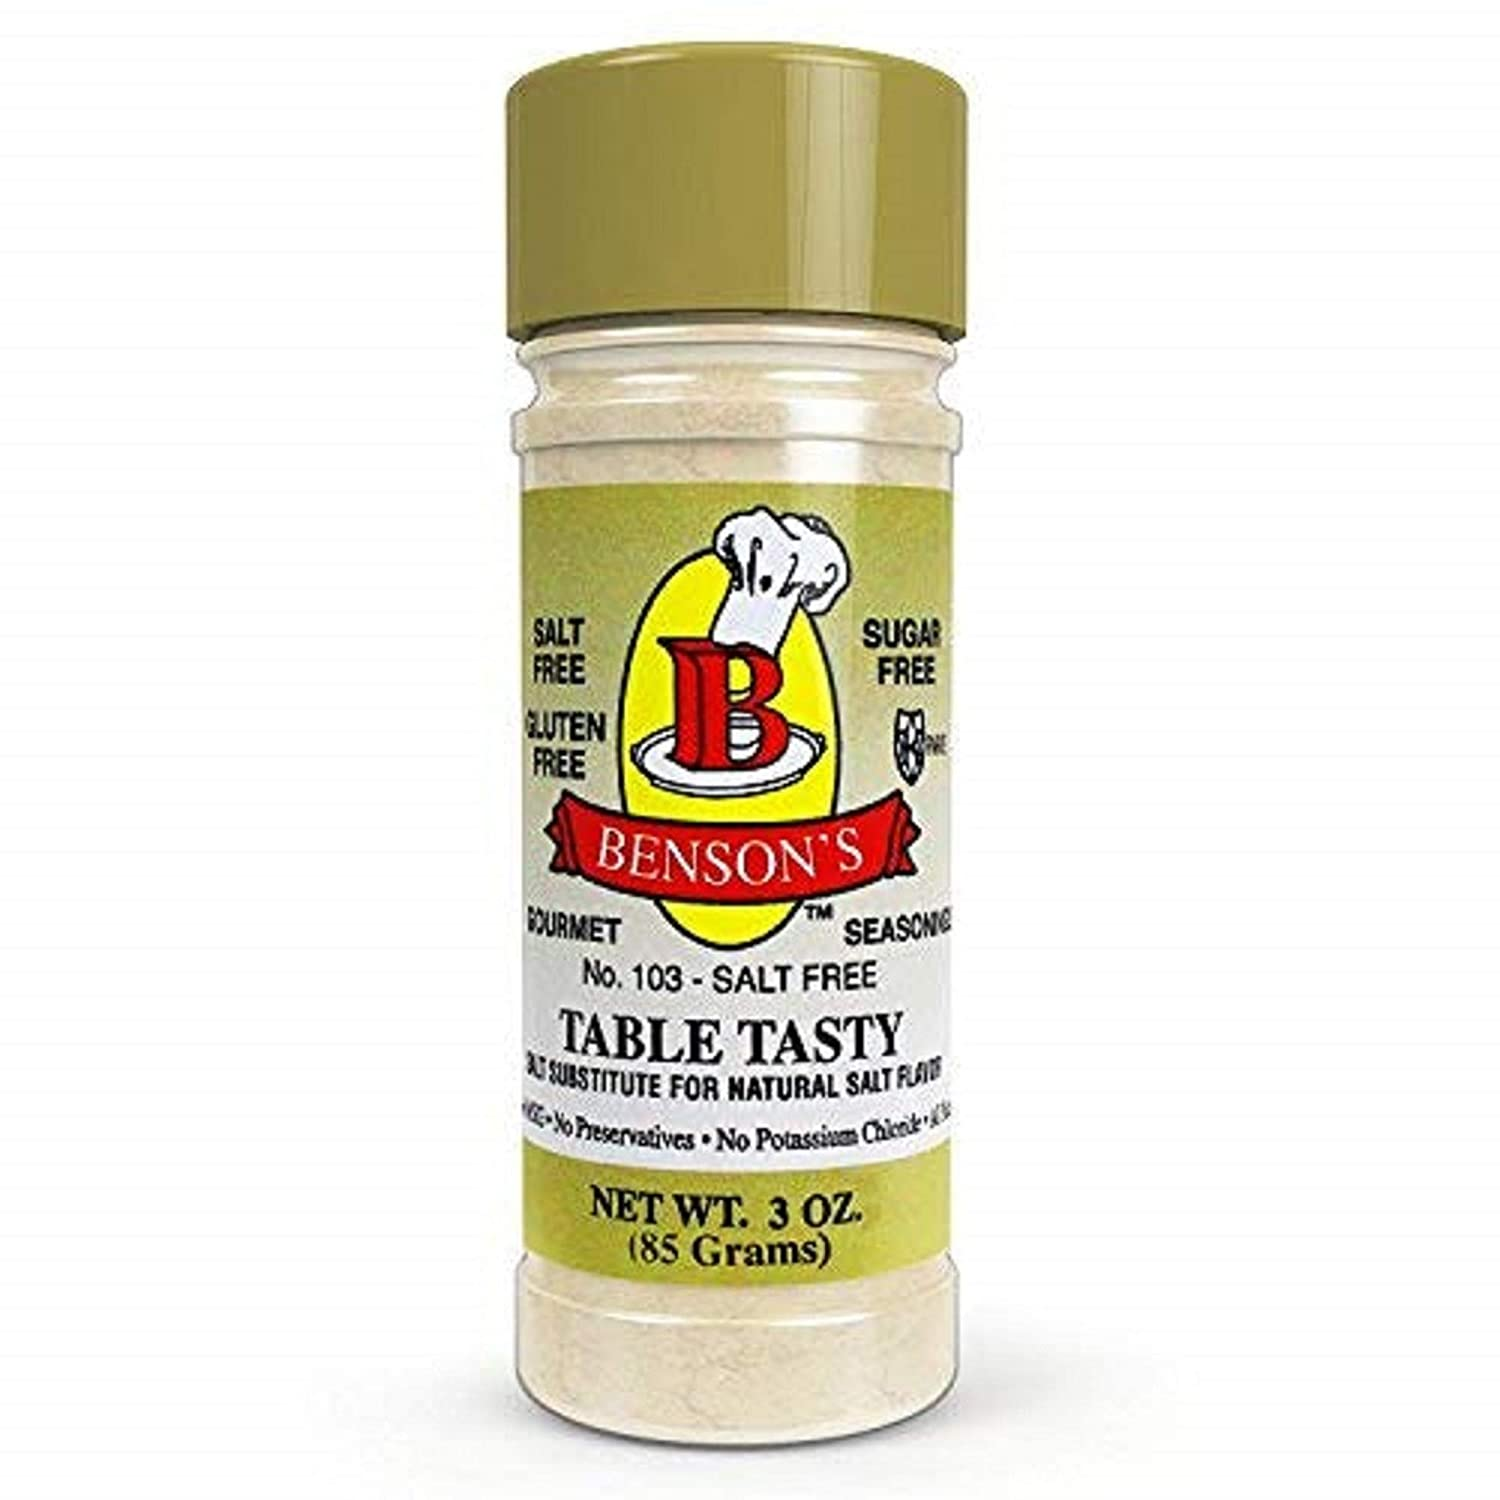 Amazon Com Benson S Table Tasty Salt Substitute No Potassium Chloride Salt Substitute No Bitter After Taste Good Flavor No Sodium Salt Alternative New Size 3 Oz